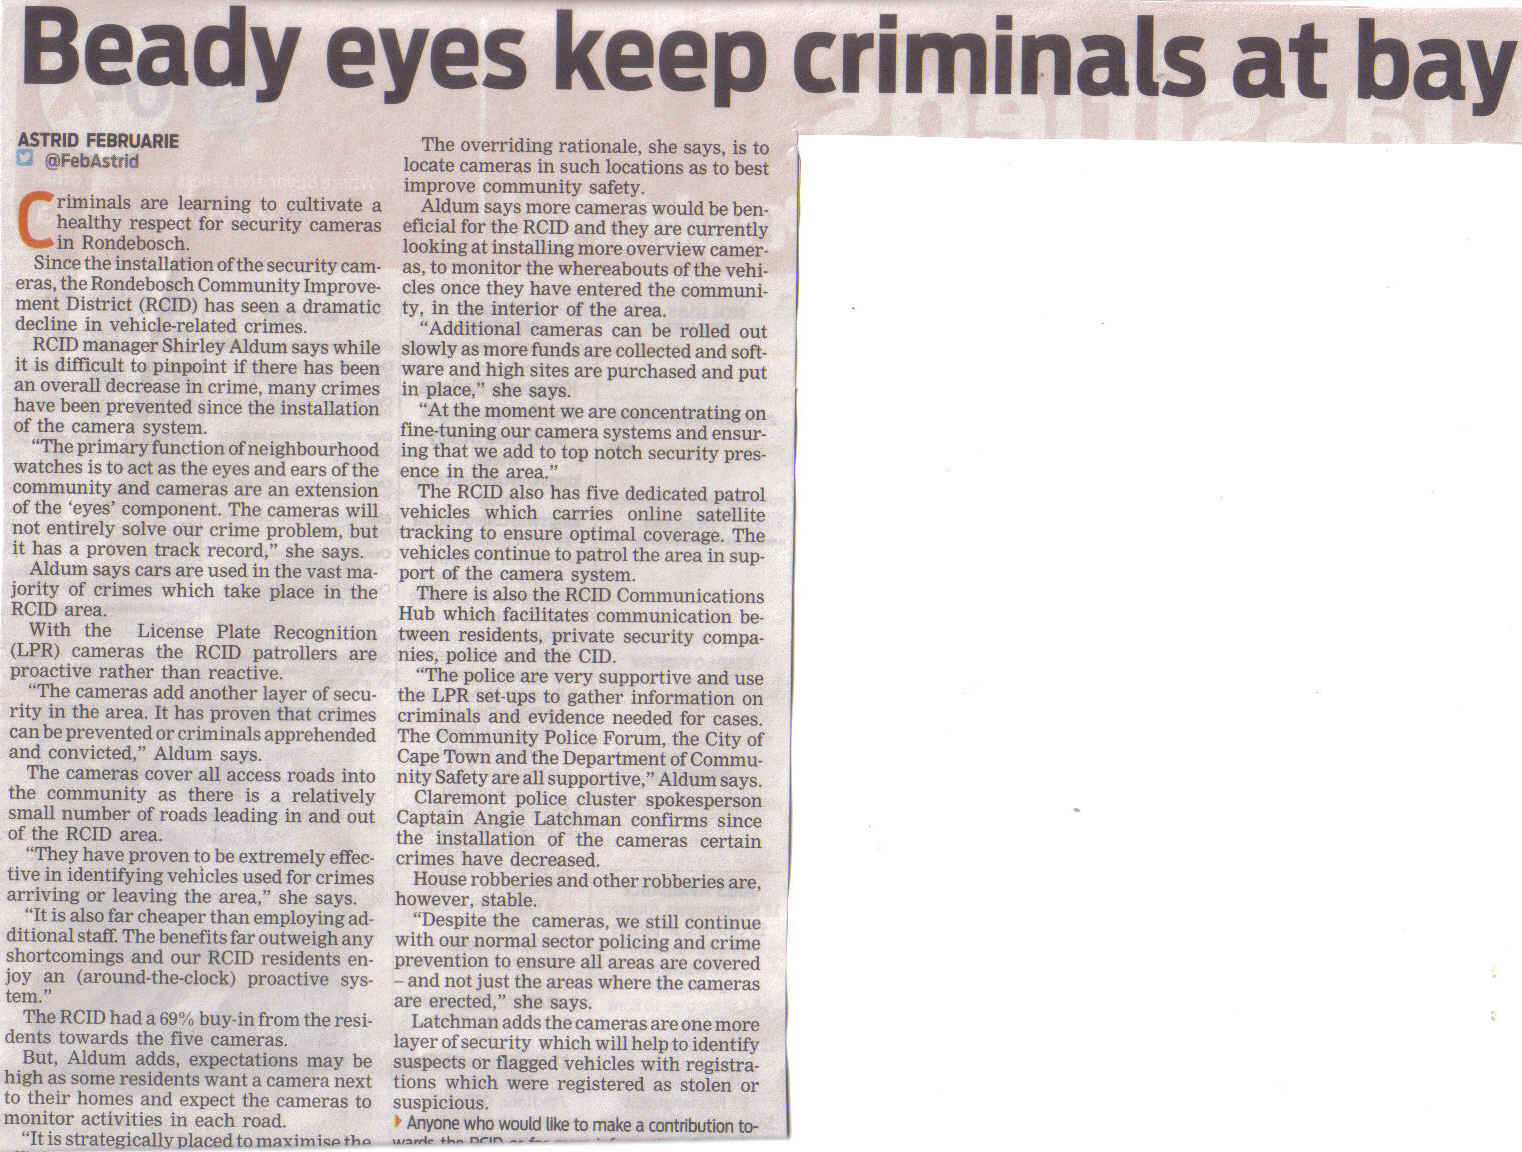 Beady eyes keep criminals at bay ( People's Post, 30 January 2013)